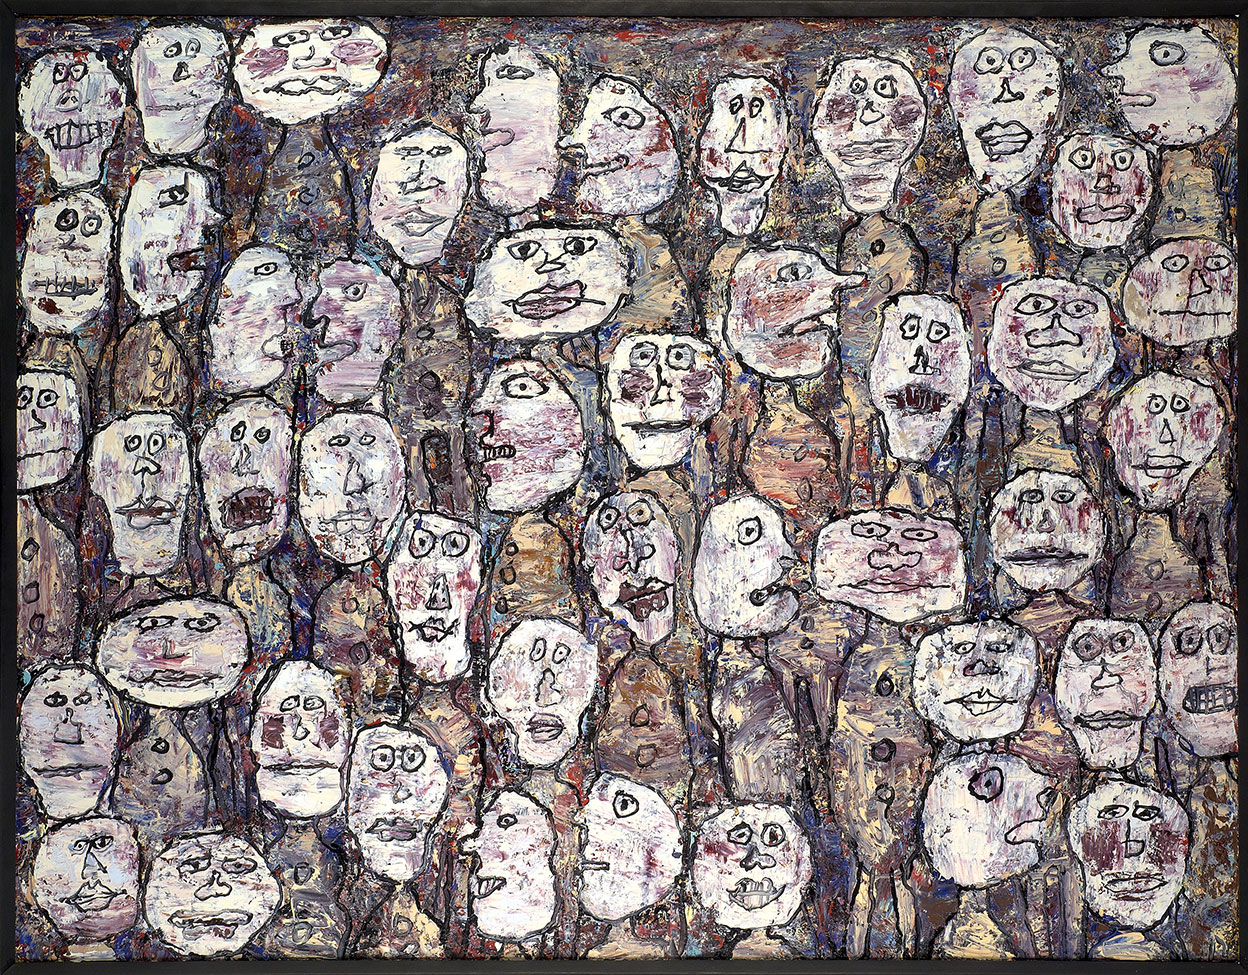 Jean Dubuffet, Affluence, 22-23 mars 1961, huile sur toile, 89 x 116 cm. Collection Fondation Dubuffet, Paris © Fondation Dubuffet, Paris © Adagp, Paris 2019